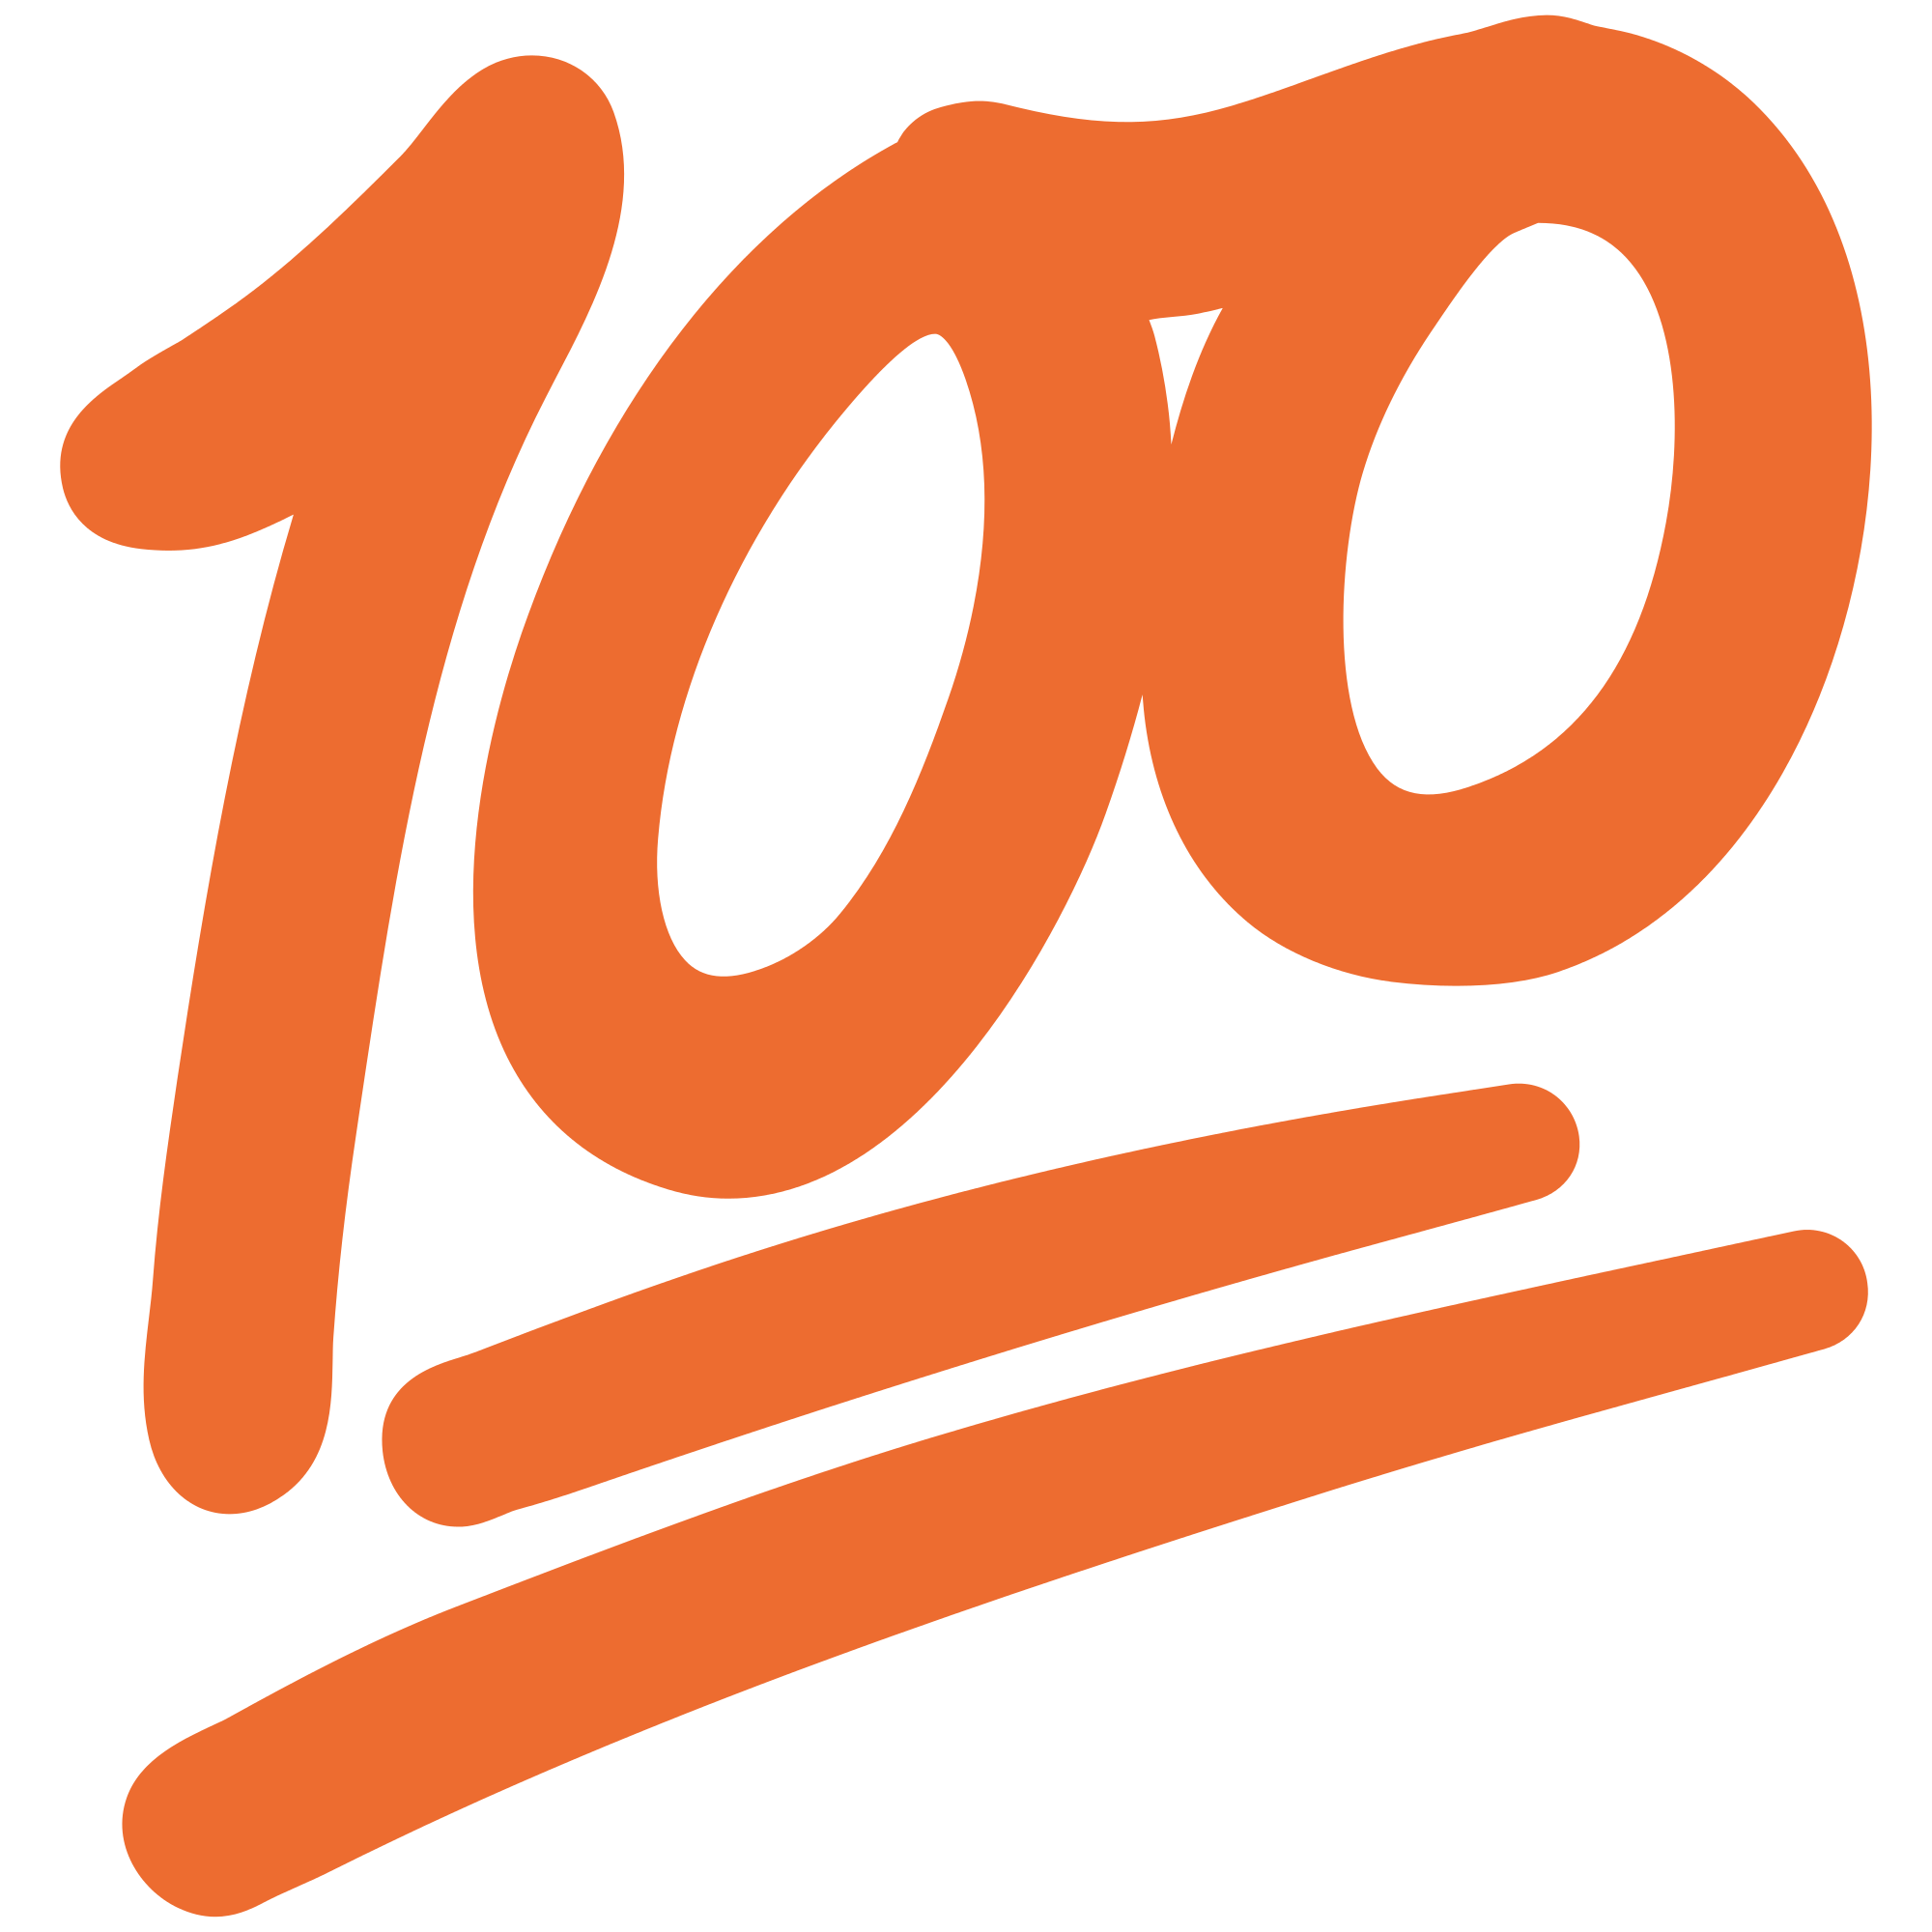 freeuse stock  logos. 100th of clipart transparent